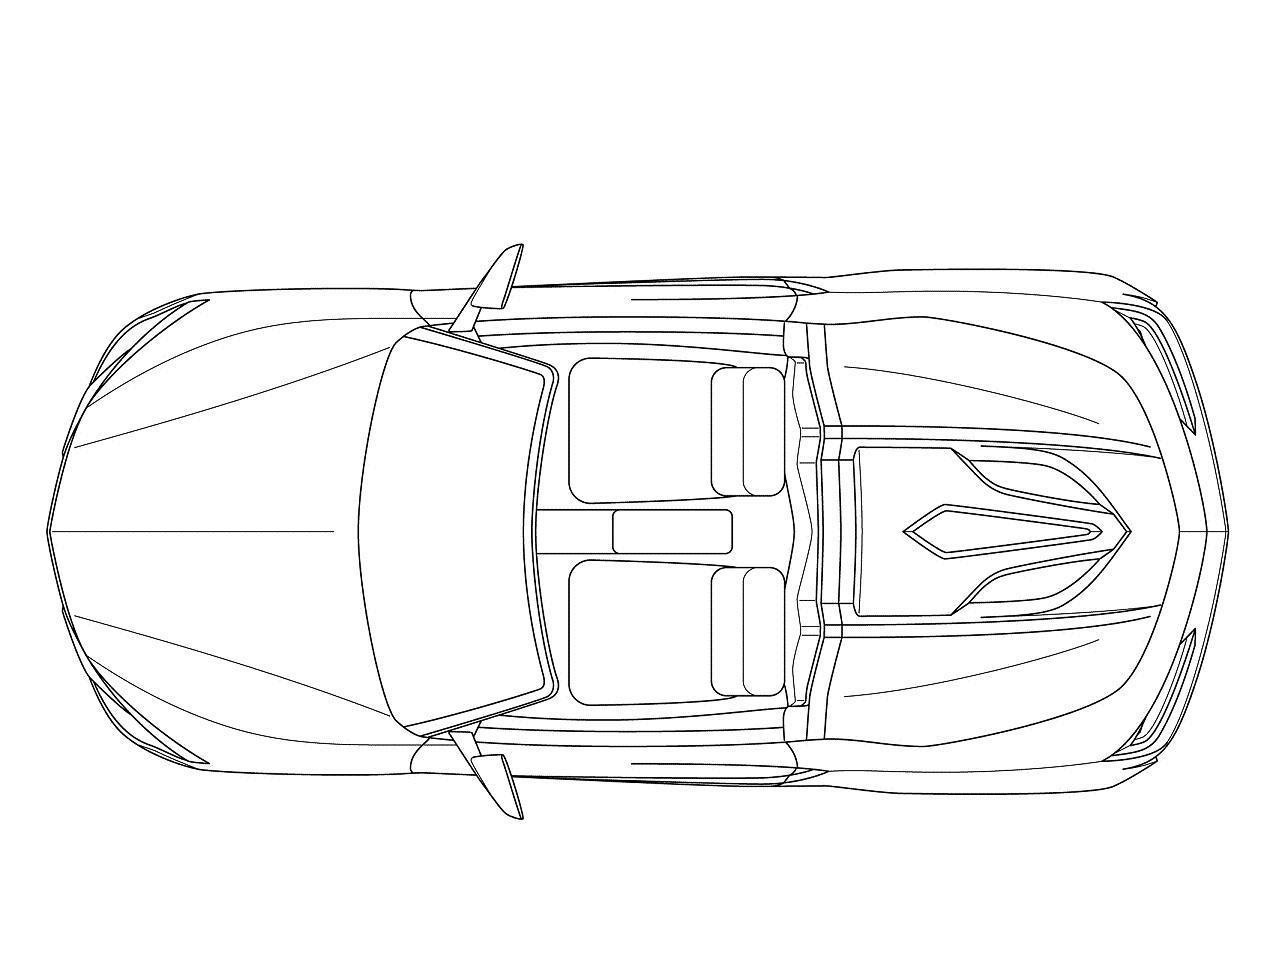 car top view drawing at getdrawings com